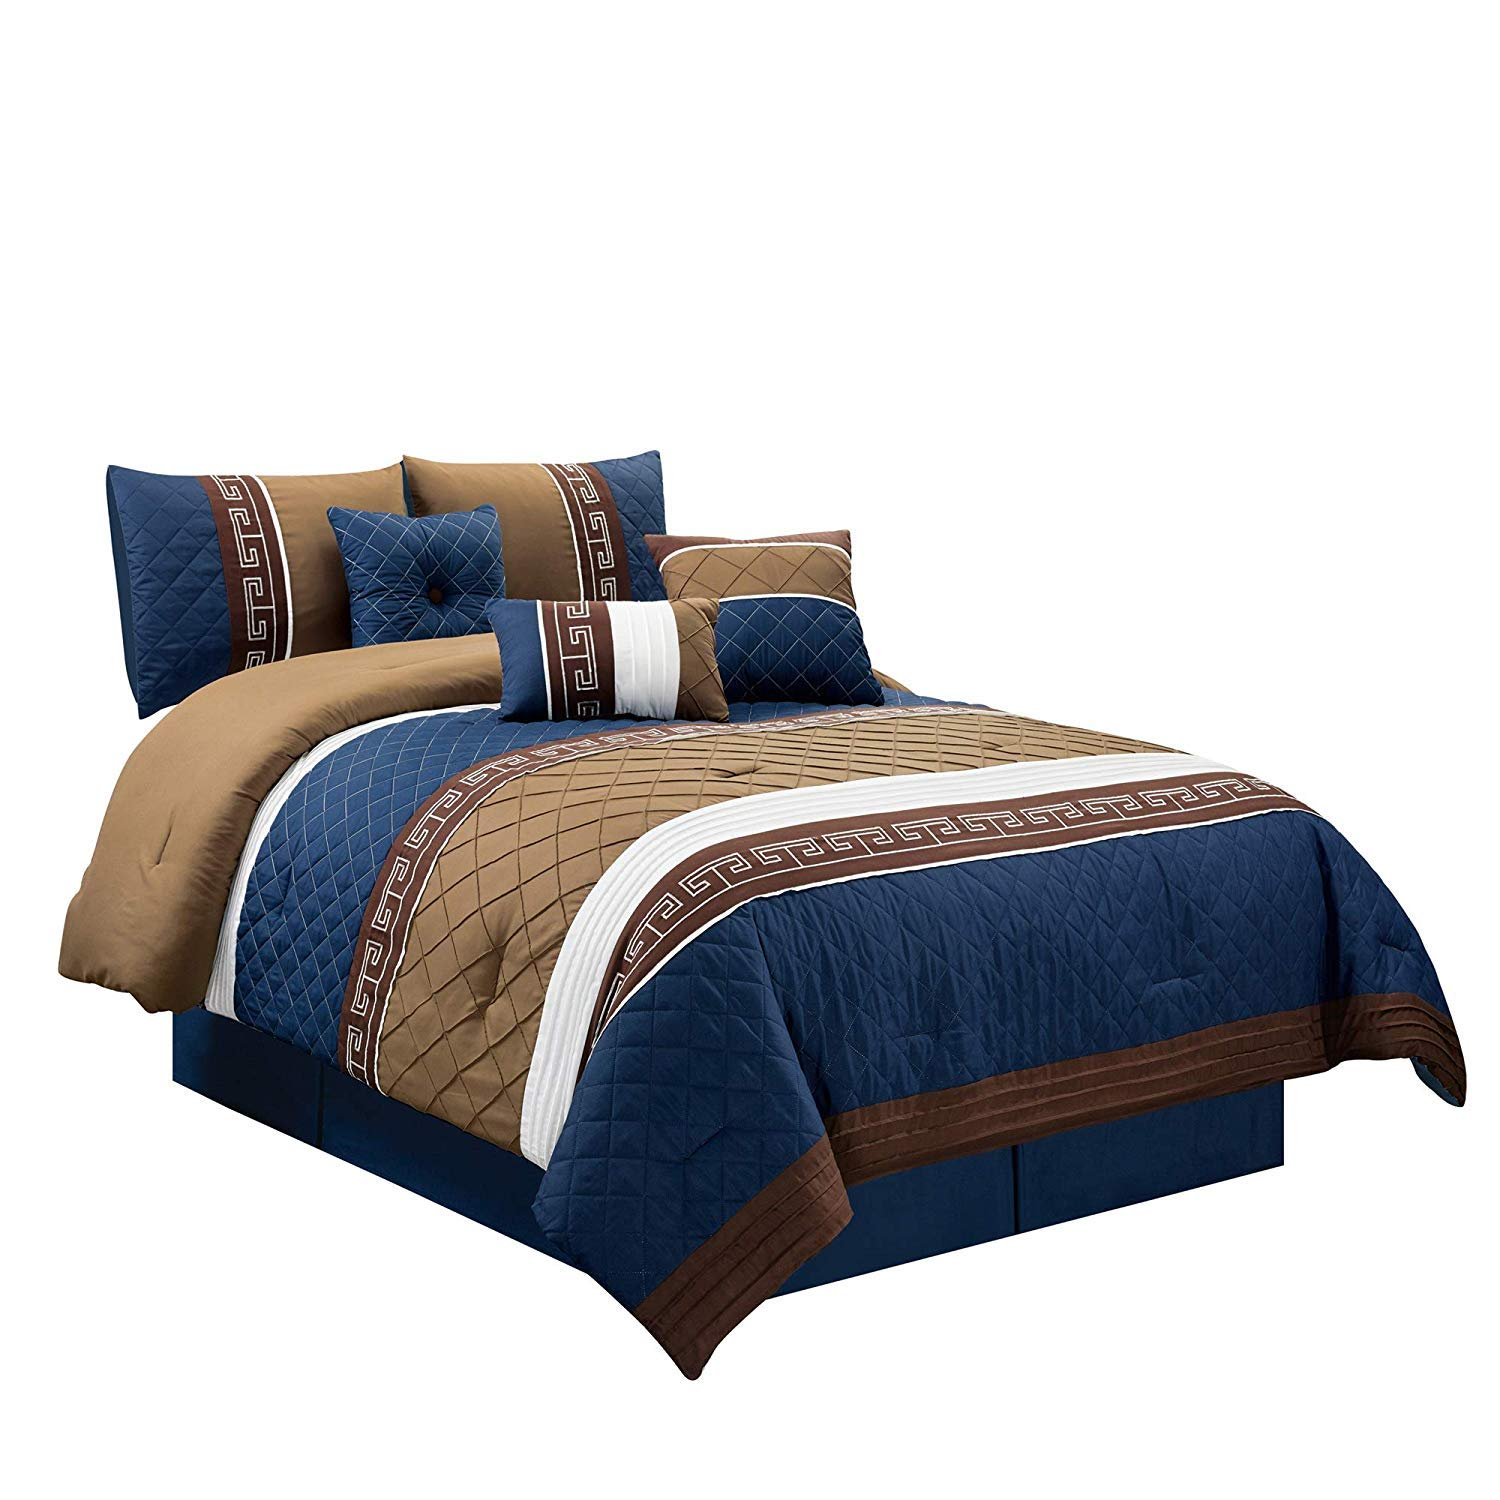 Chezmoi Collection Marcia 7-Piece Navy Blue, Tan, Chocolate Brown, White Pleated Striped Diamond Quilted Embroidered Comforter Set, Queen